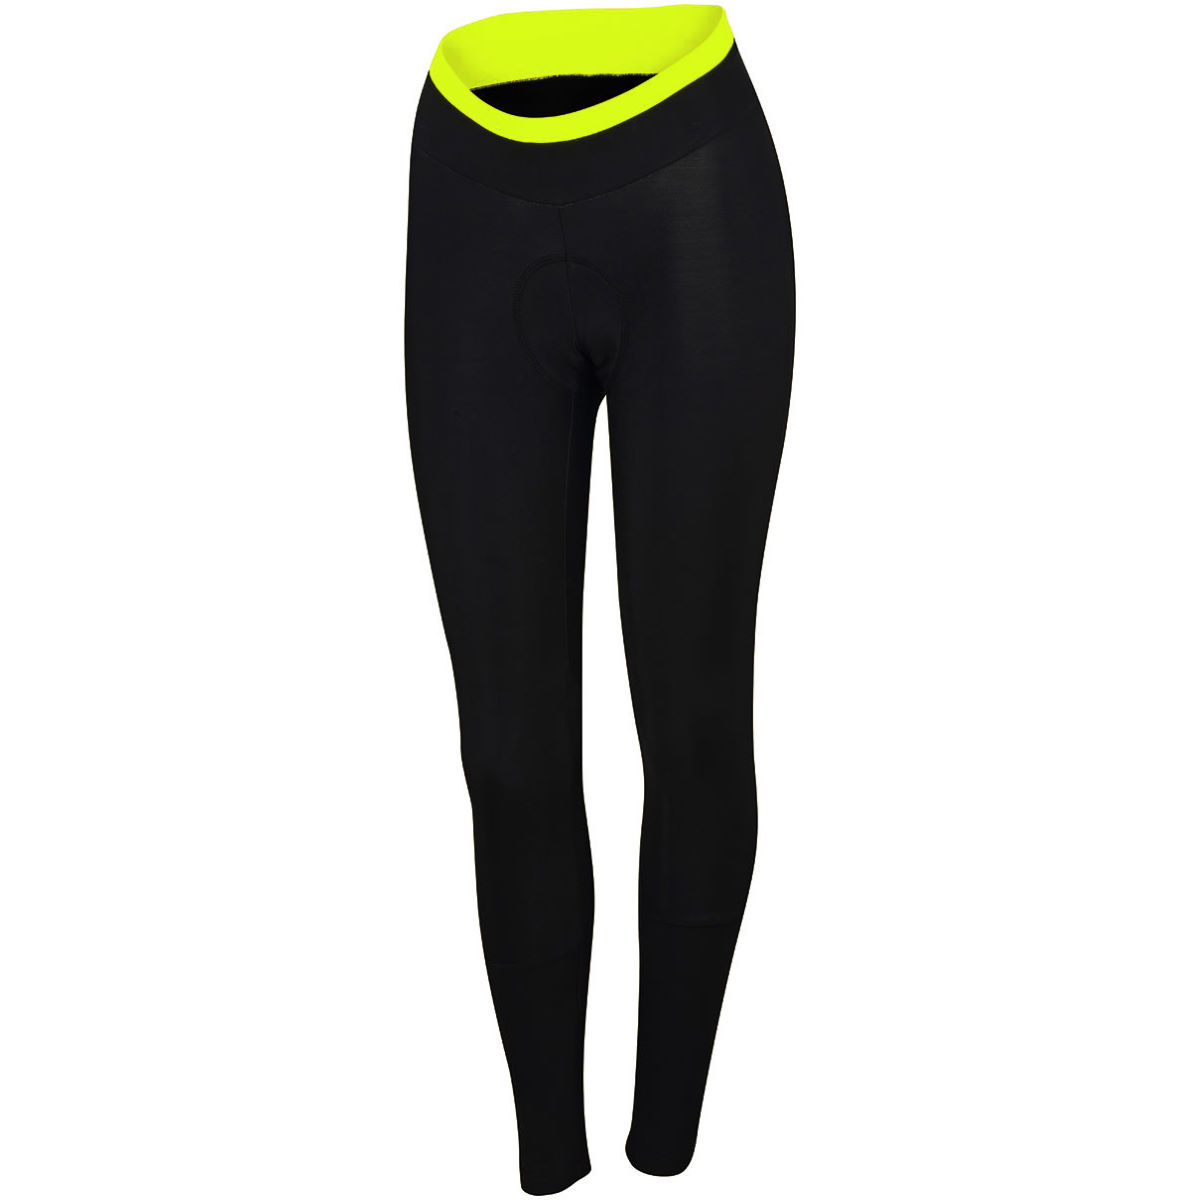 Cuissard long Femme Sportful Luna Thermal - S Black/Yellow Fluo